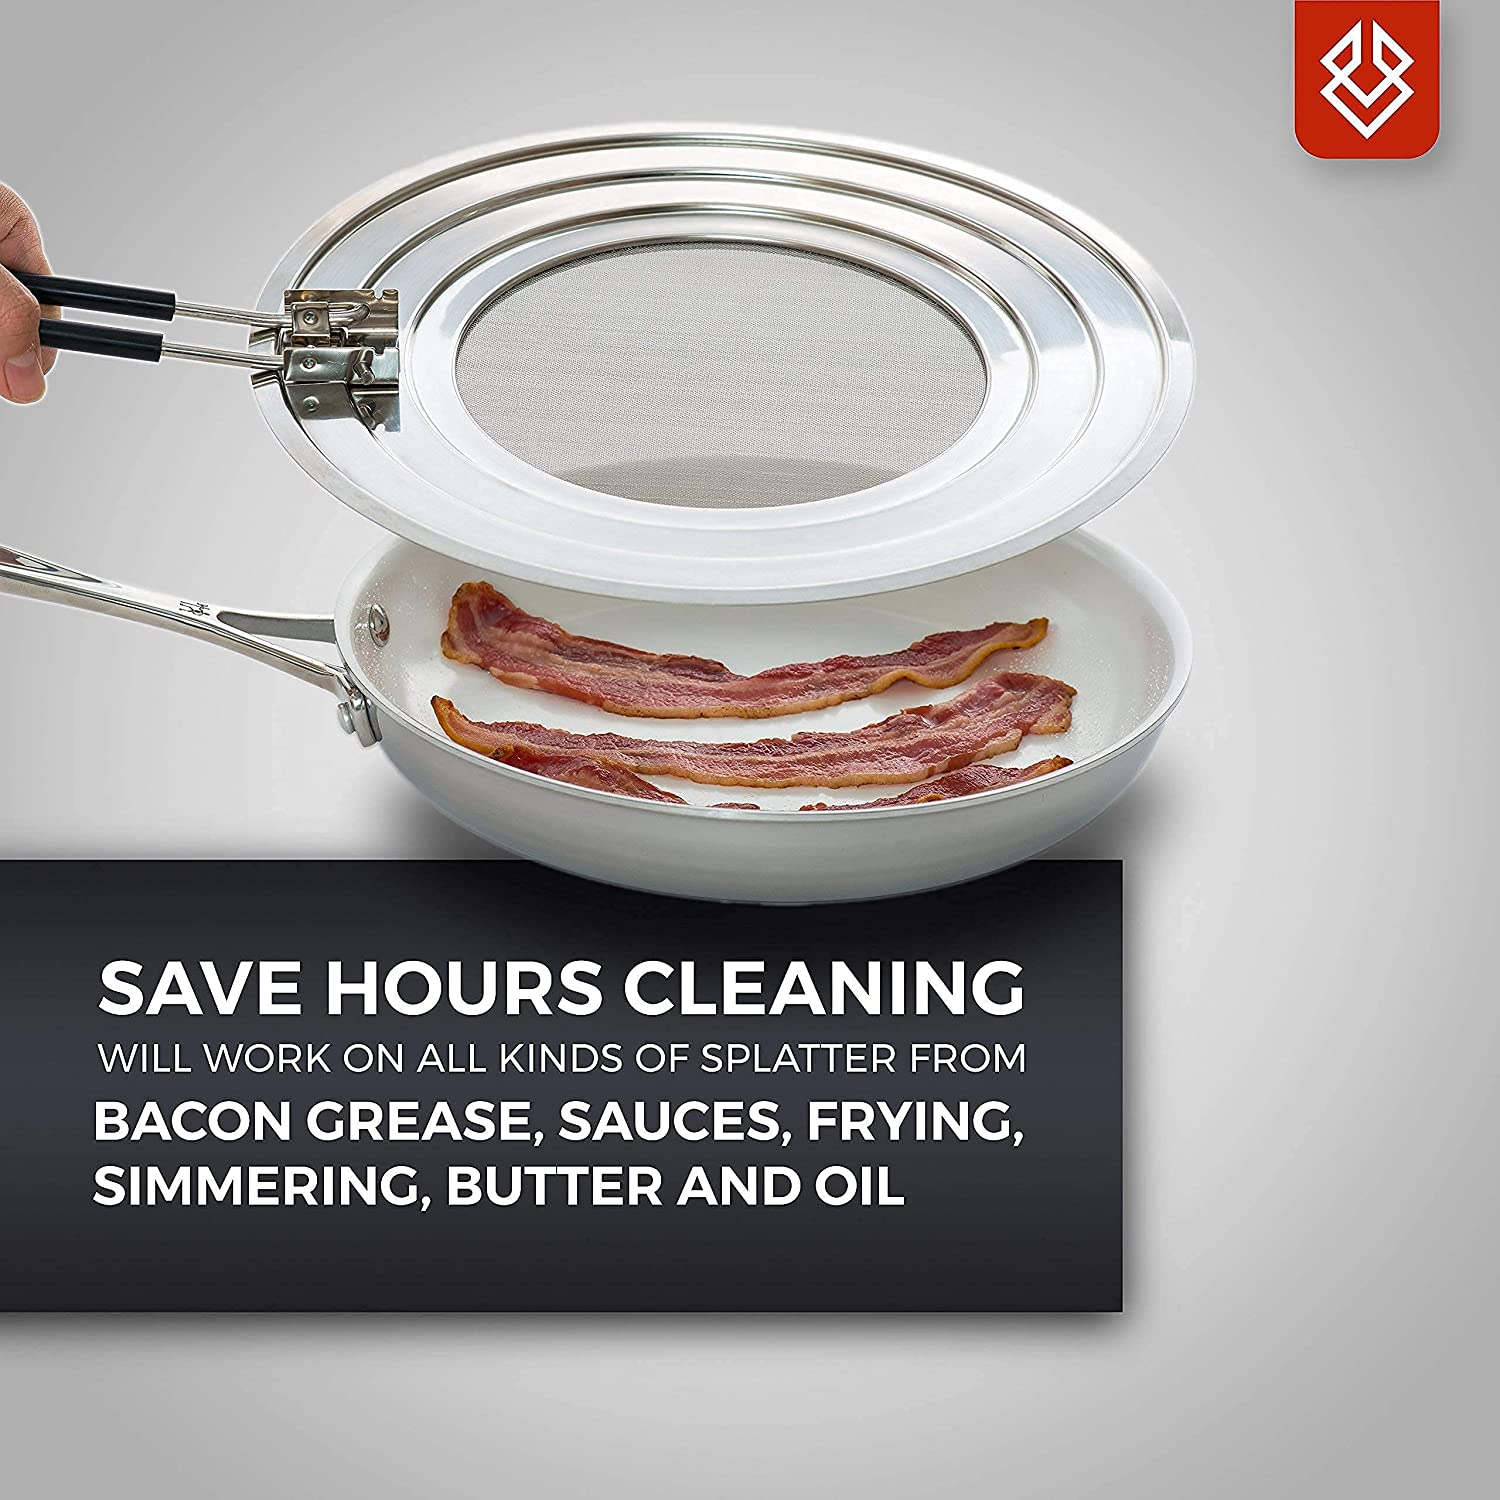 Things to Consider Before Choosing Best Frying Pan for Bacon